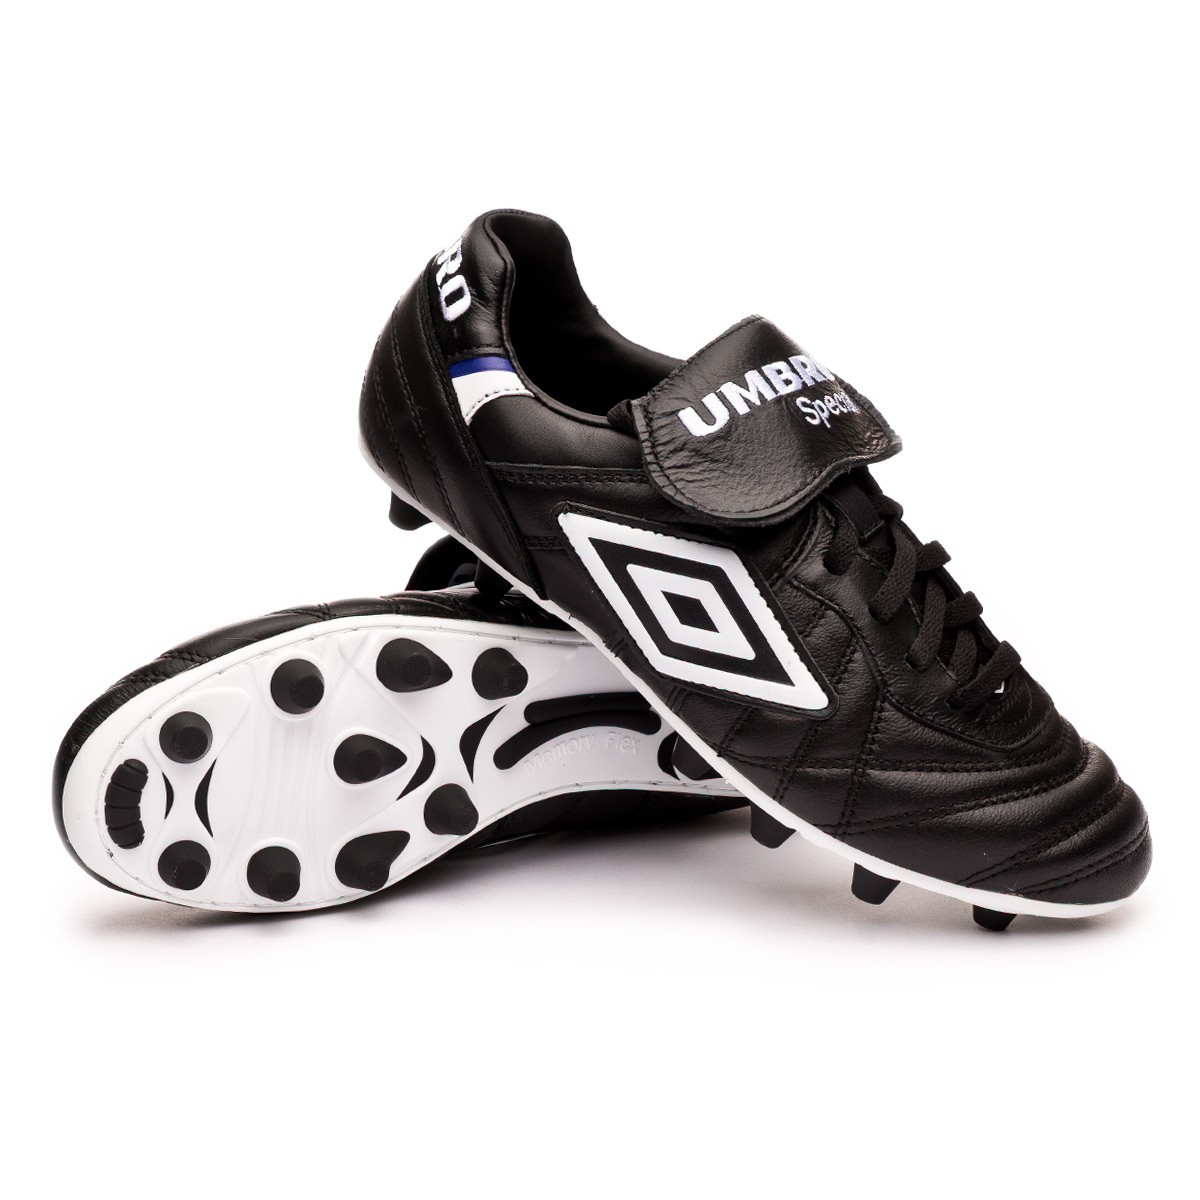 Boot Umbro Speciali98 Pro FG Black - Leaked soccer 0e375a471db